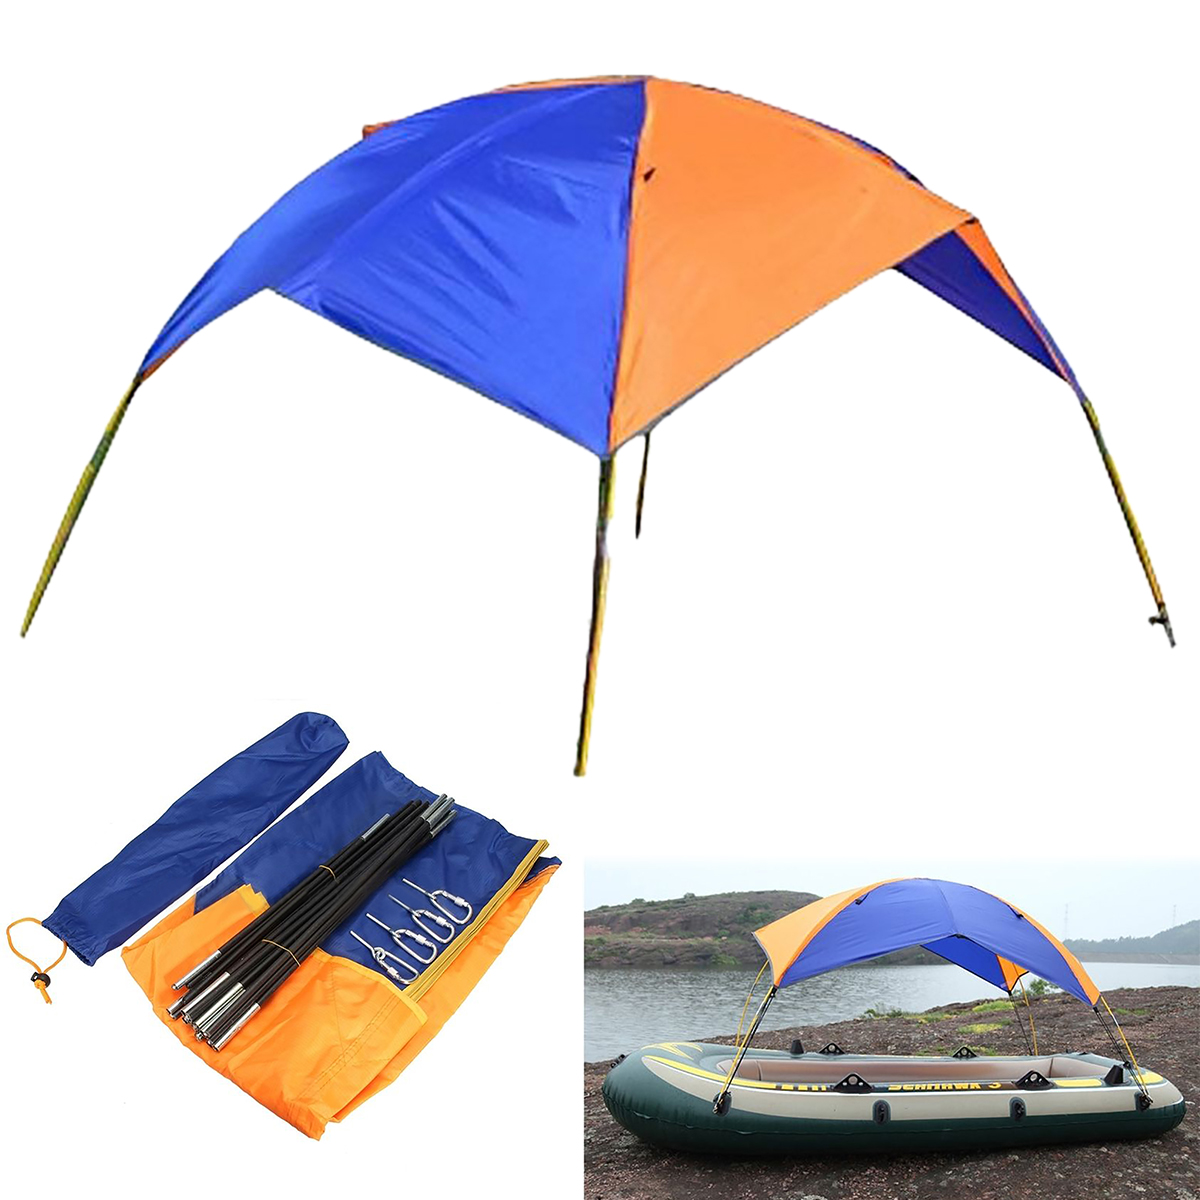 MAYITR Rubber Inflatable Boat Sun Shelter Fishing Tent for 2 Person Boat Awning Canopy Beach Camping Sunshade PVC Tent New ботинки мужские black awning boat 310